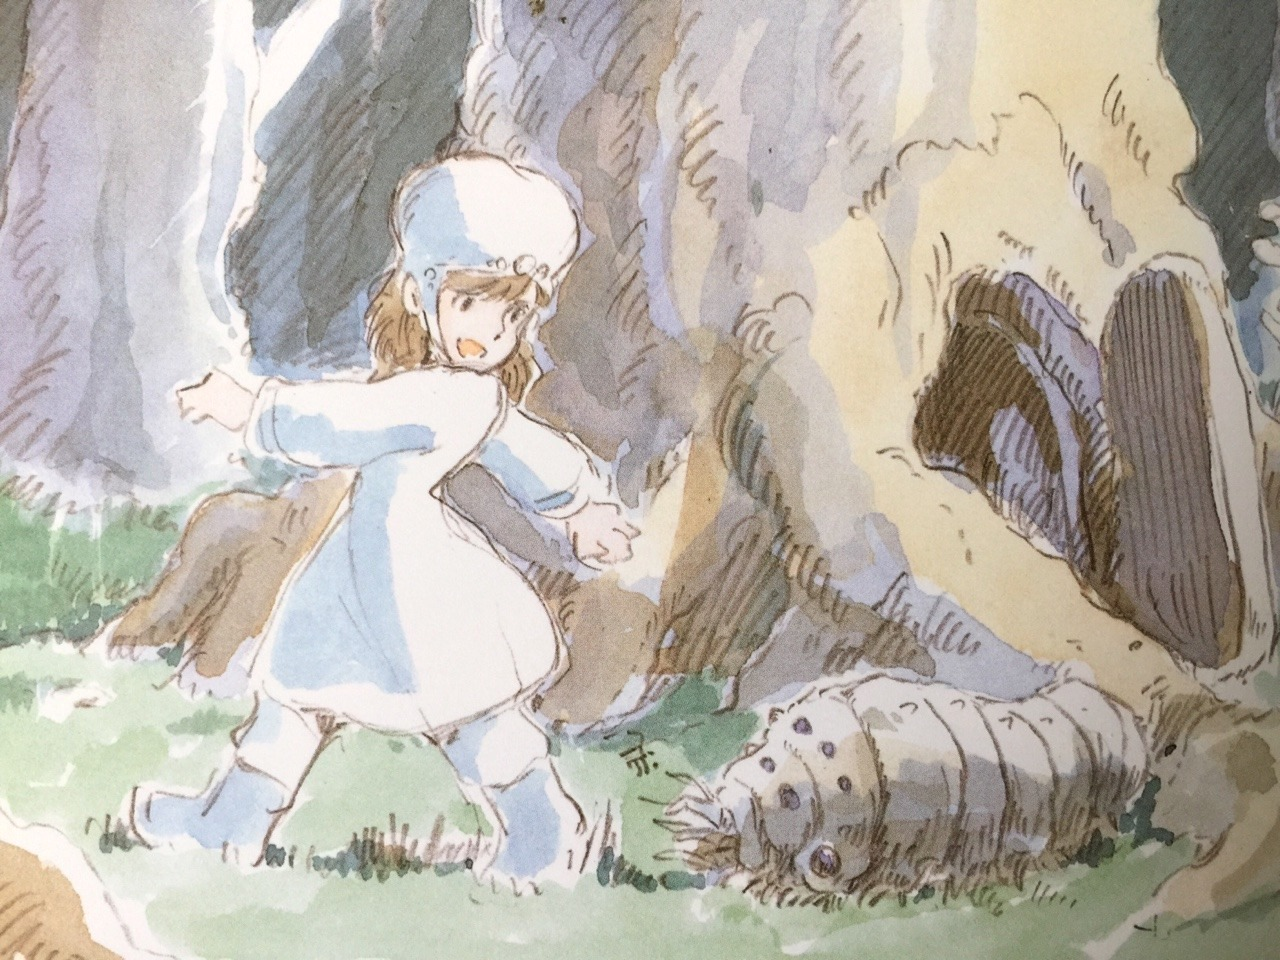 Production-Sketches-and-Concept-Work-for-Nausica-of-the-Valley-of-the-Wind-Hayao-Miyazaki-nausicaa-of-the-valley-of-the-wind-40590588-1280-960.jpg